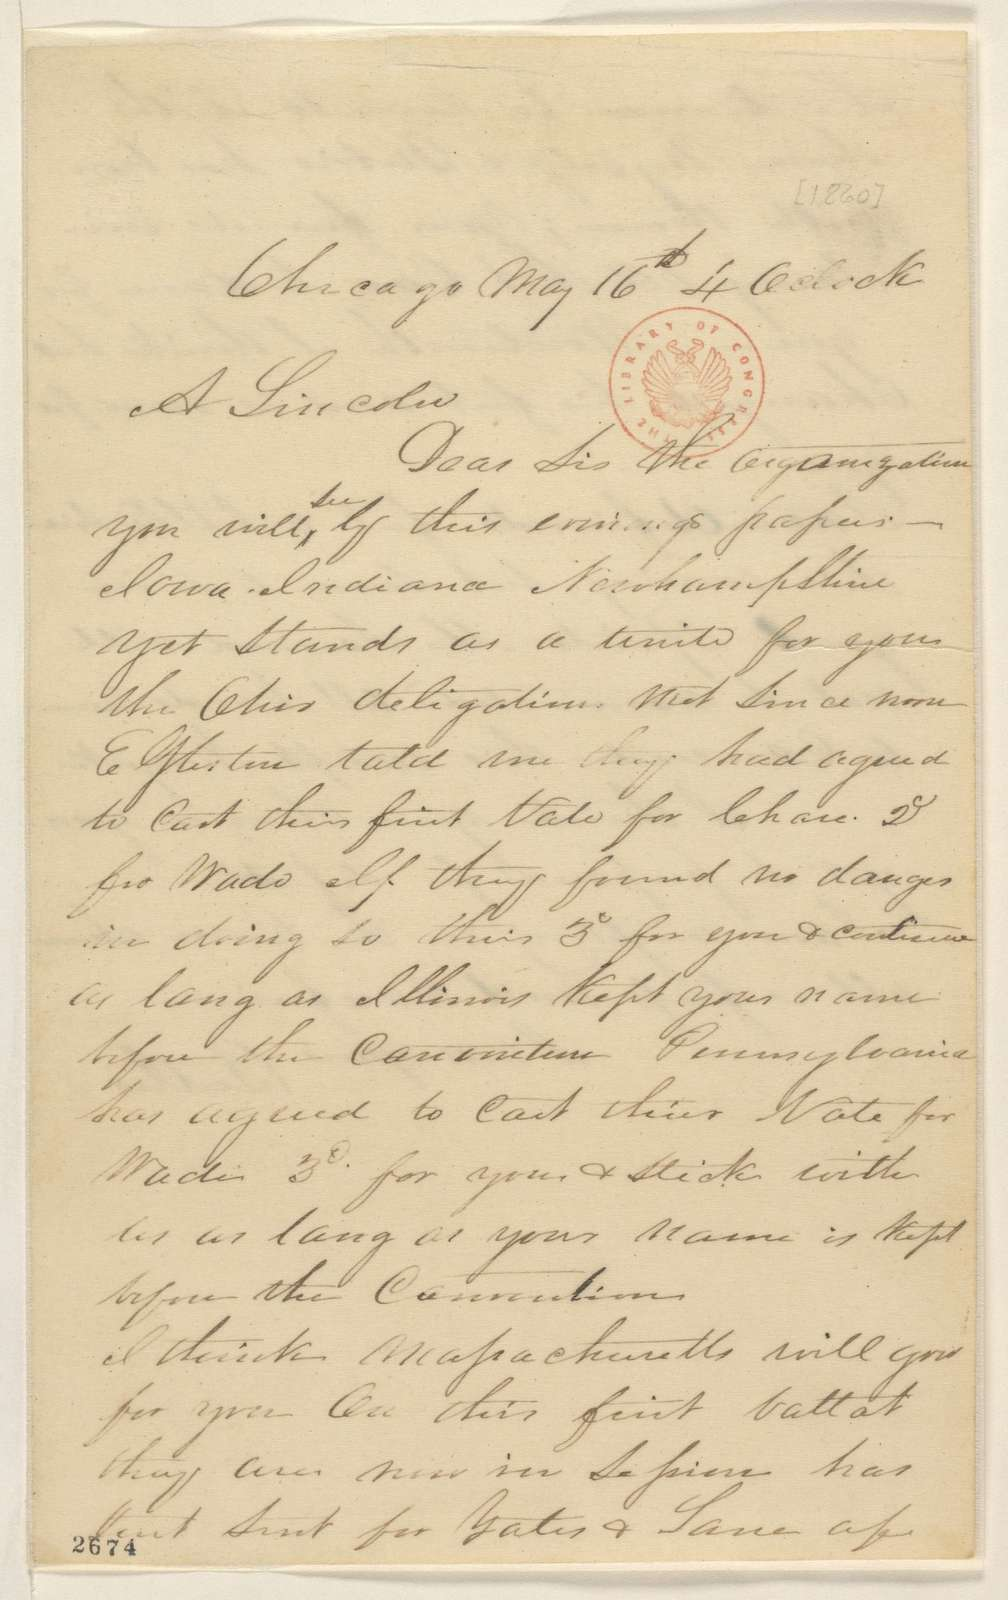 Abraham Lincoln papers: Series 1. General Correspondence. 1833-1916: William Butler to Abraham Lincoln, Wednesday, May 16, 1860 (Chicago convention)